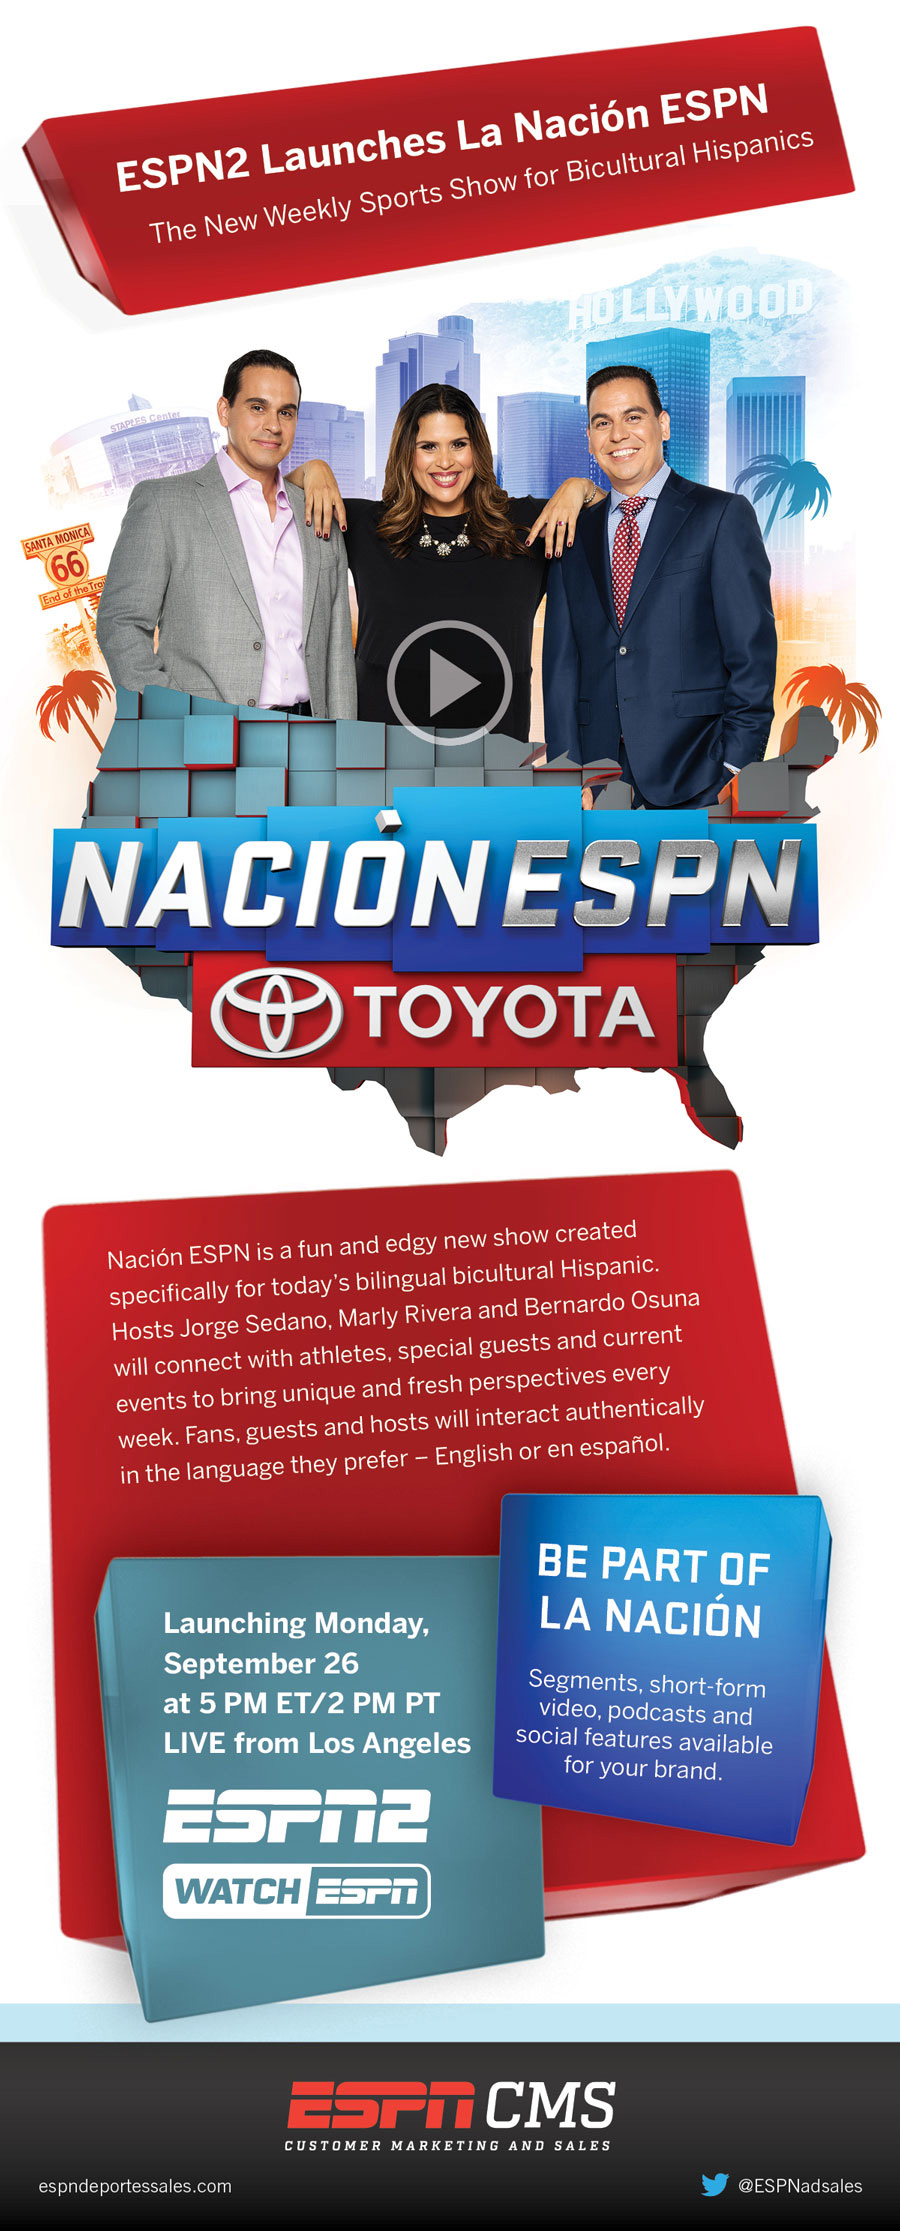 ESPNCMS Stream - 2016 ESPN2 Launches La Nacion